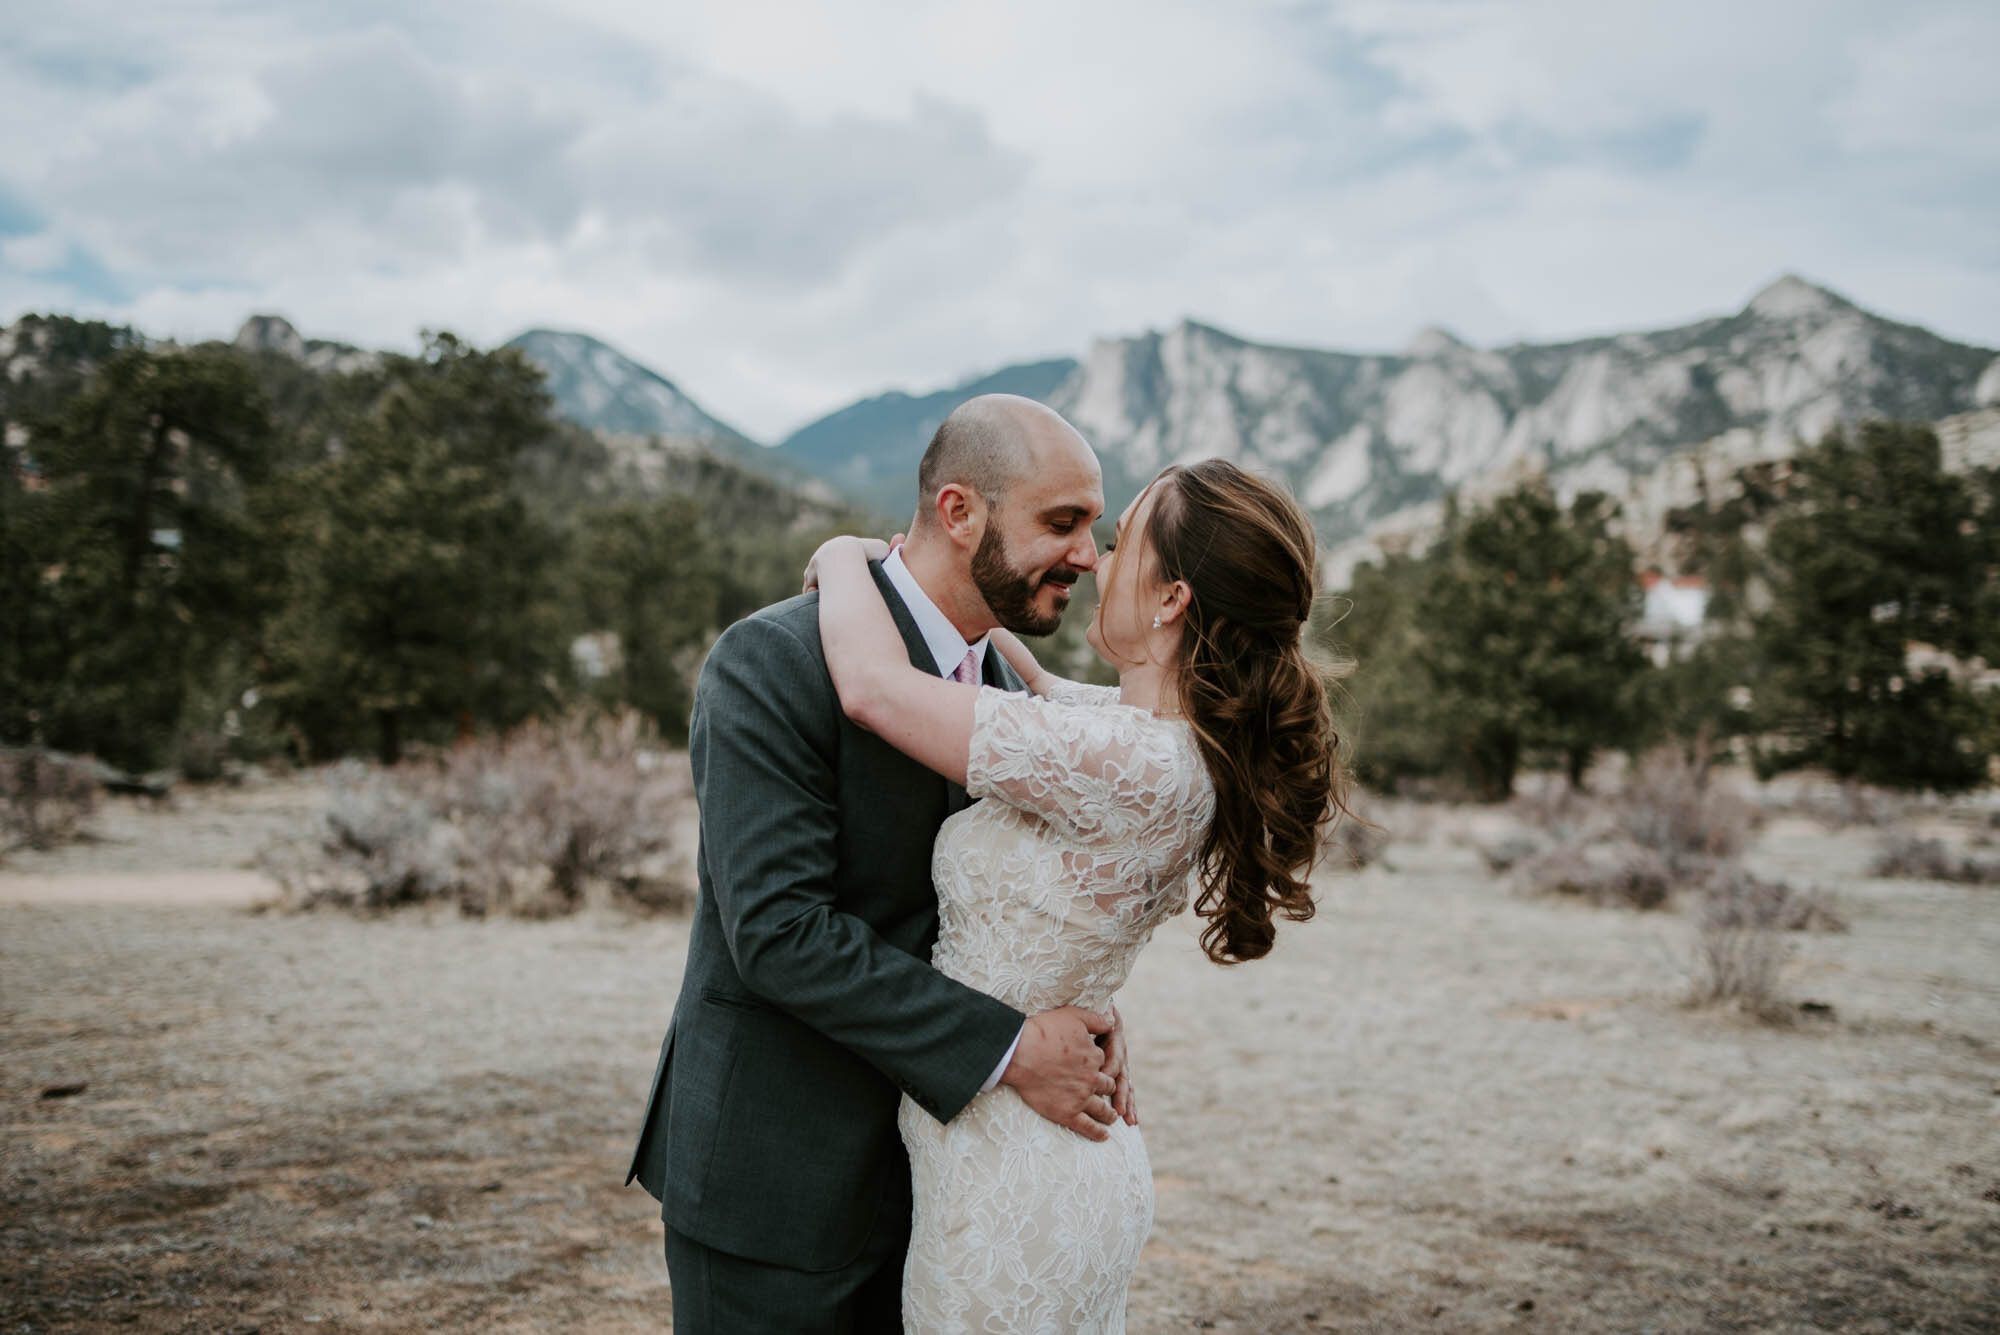 A newly married couple embrace in front of mountains in Estes Park, Colorado.